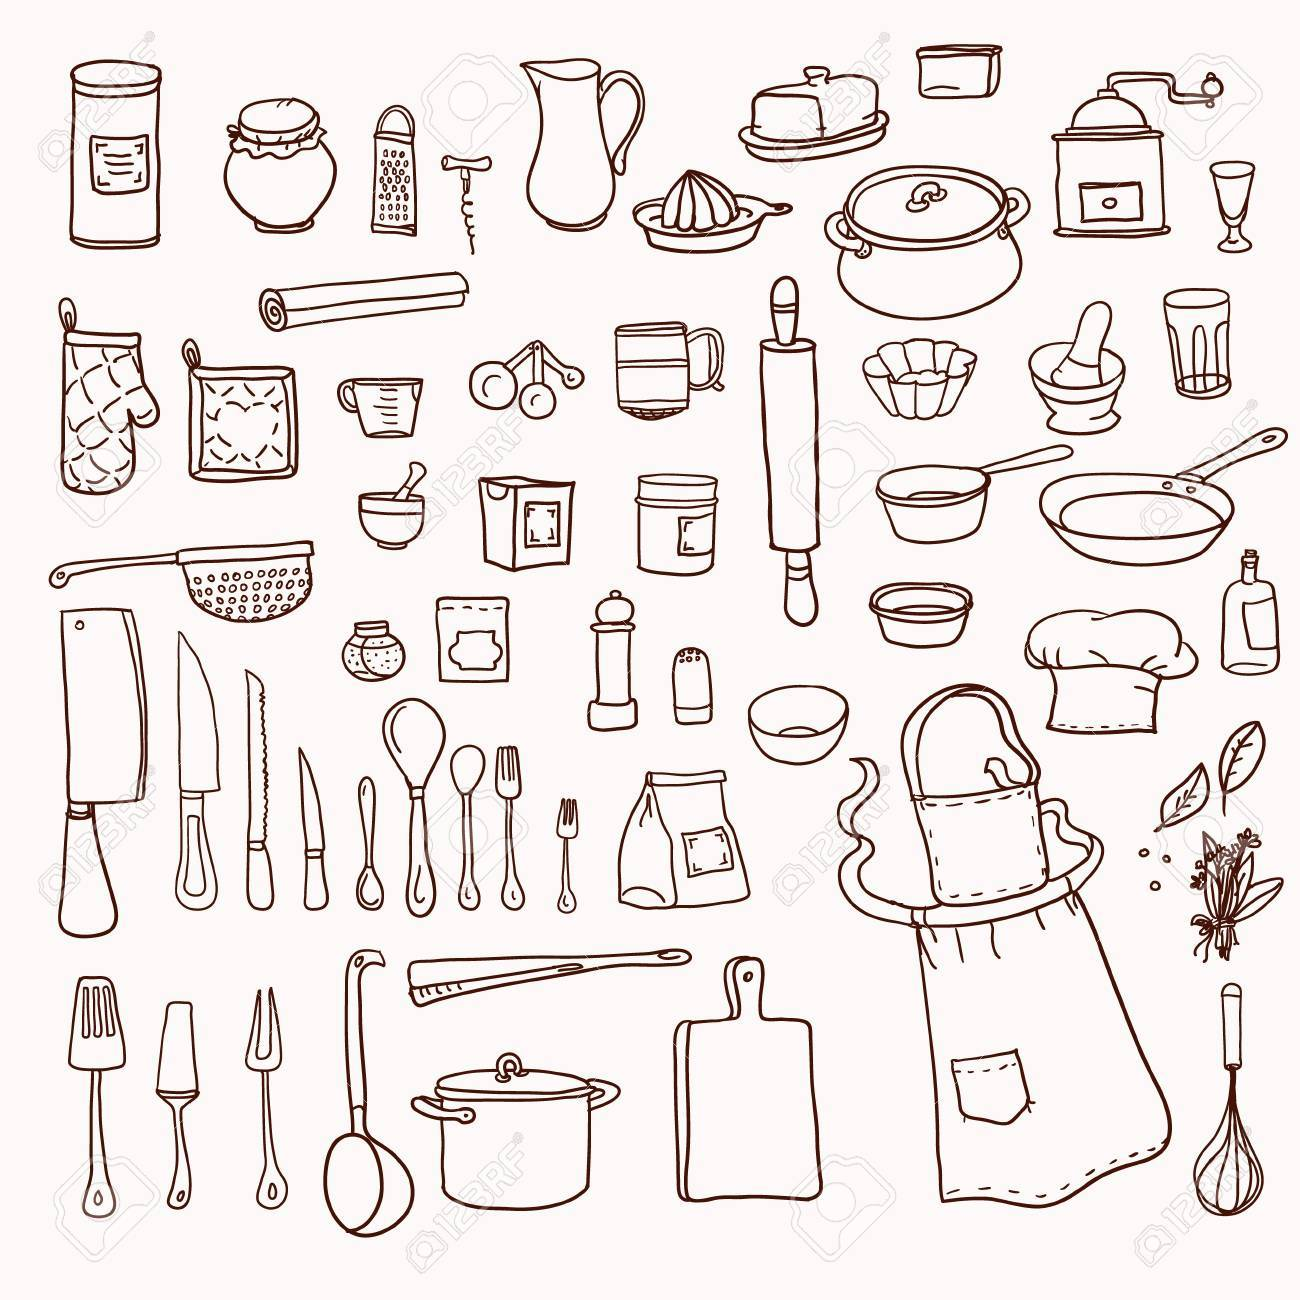 Cooking kitchen utensils collection retro set with doodle kitchen equipments vector illustration stock